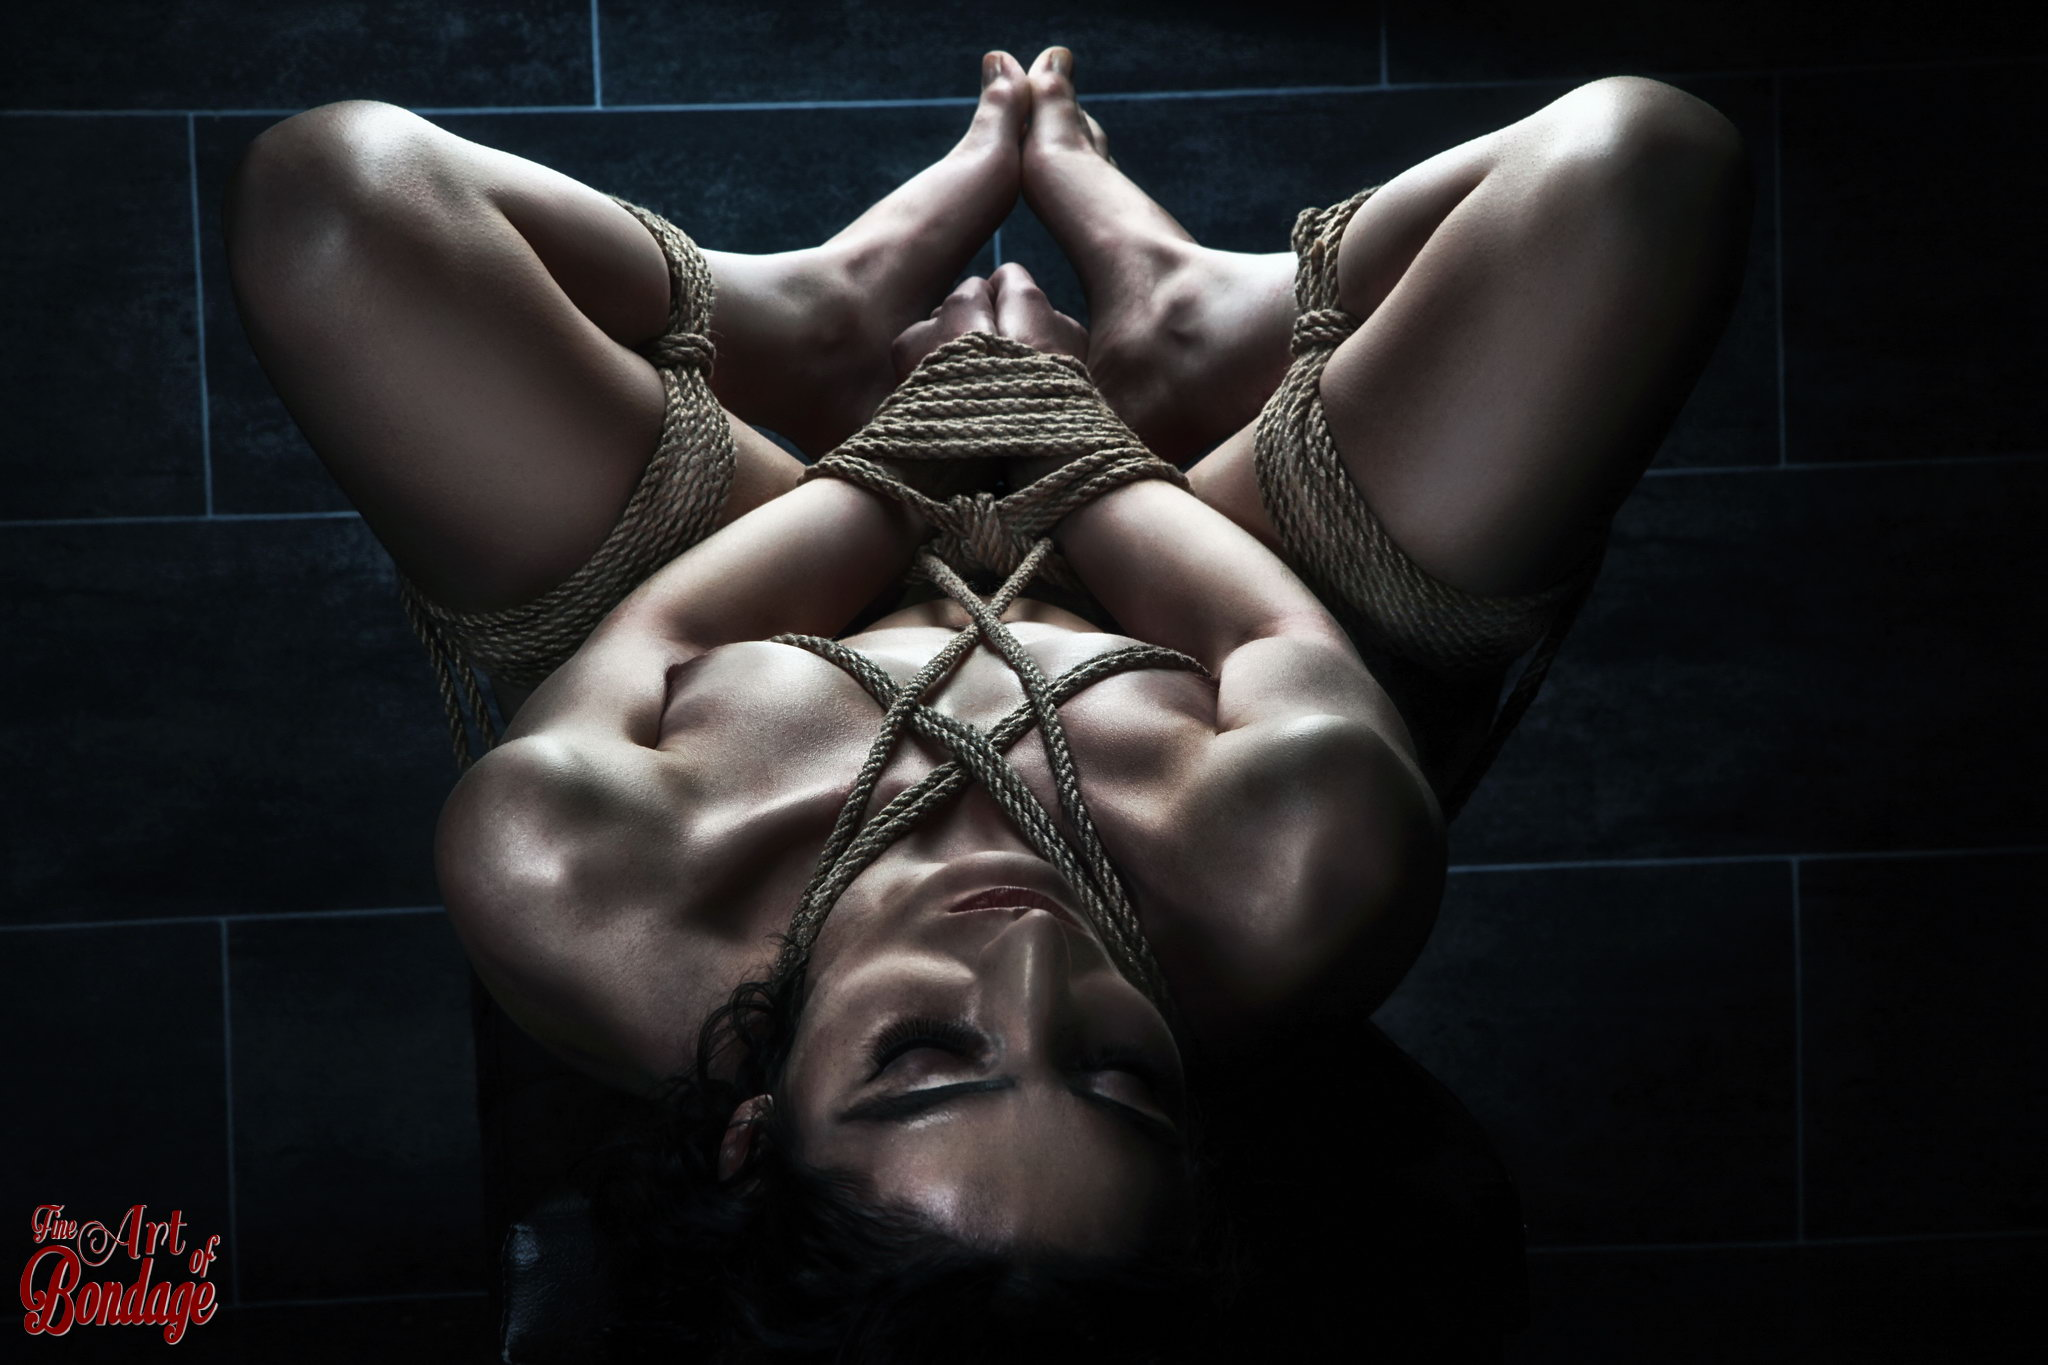 Hardcore Bondage Galleries 47